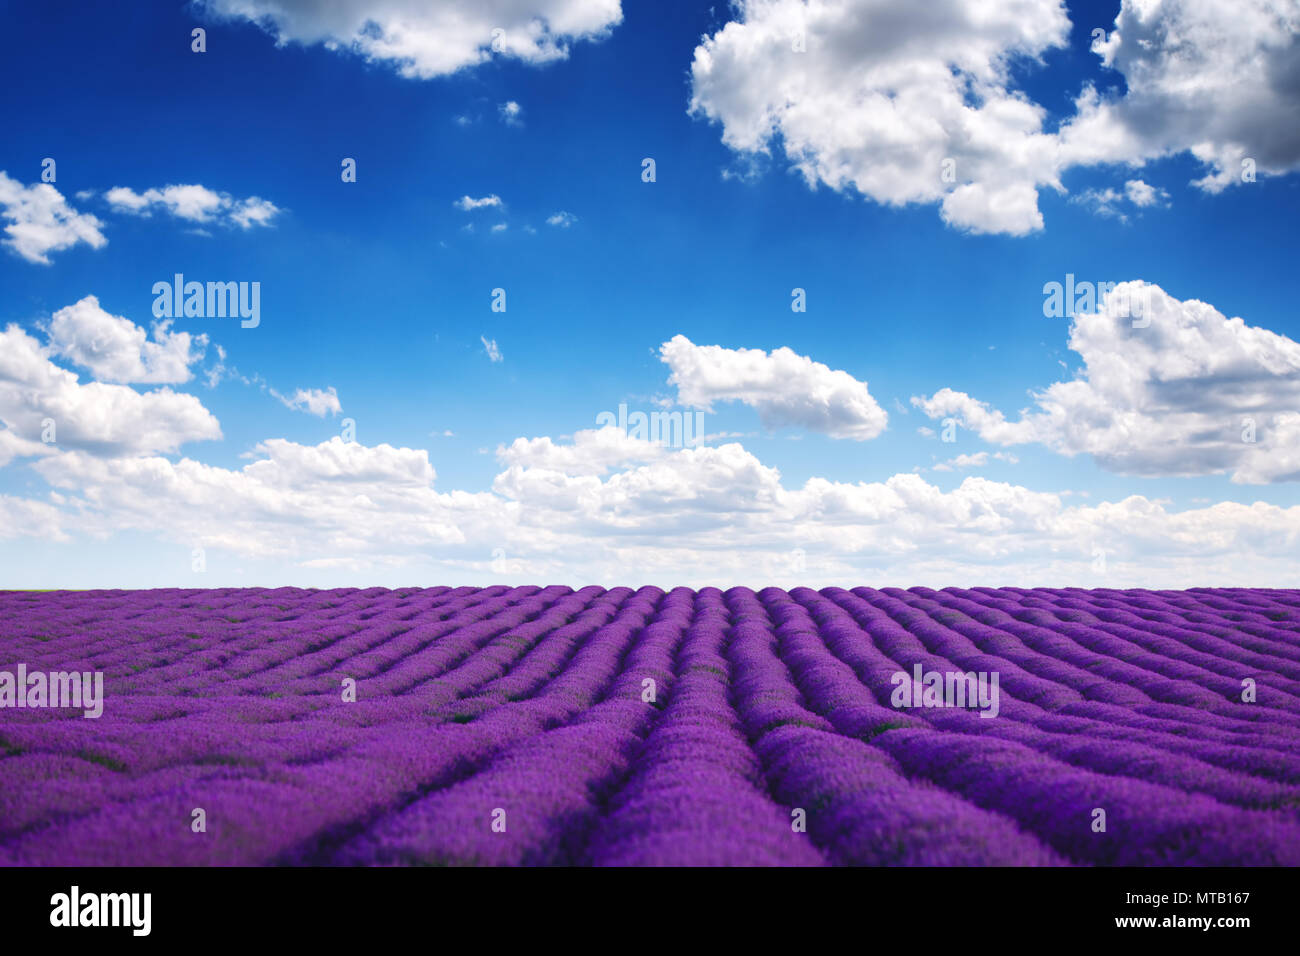 Lavender flower blooming scented fields in endless rows. - Stock Image